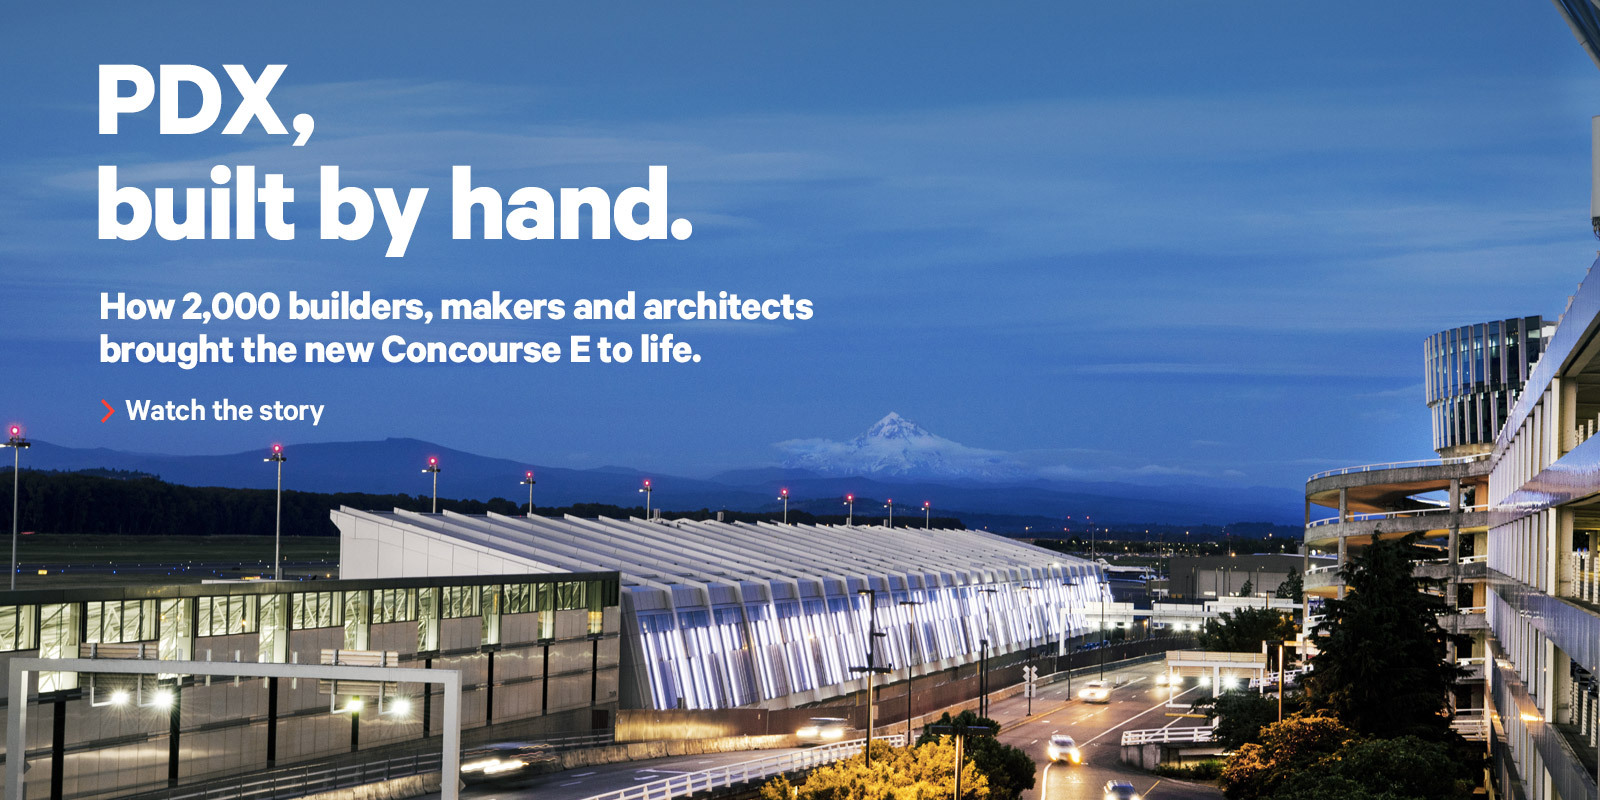 PDX, built by hand.